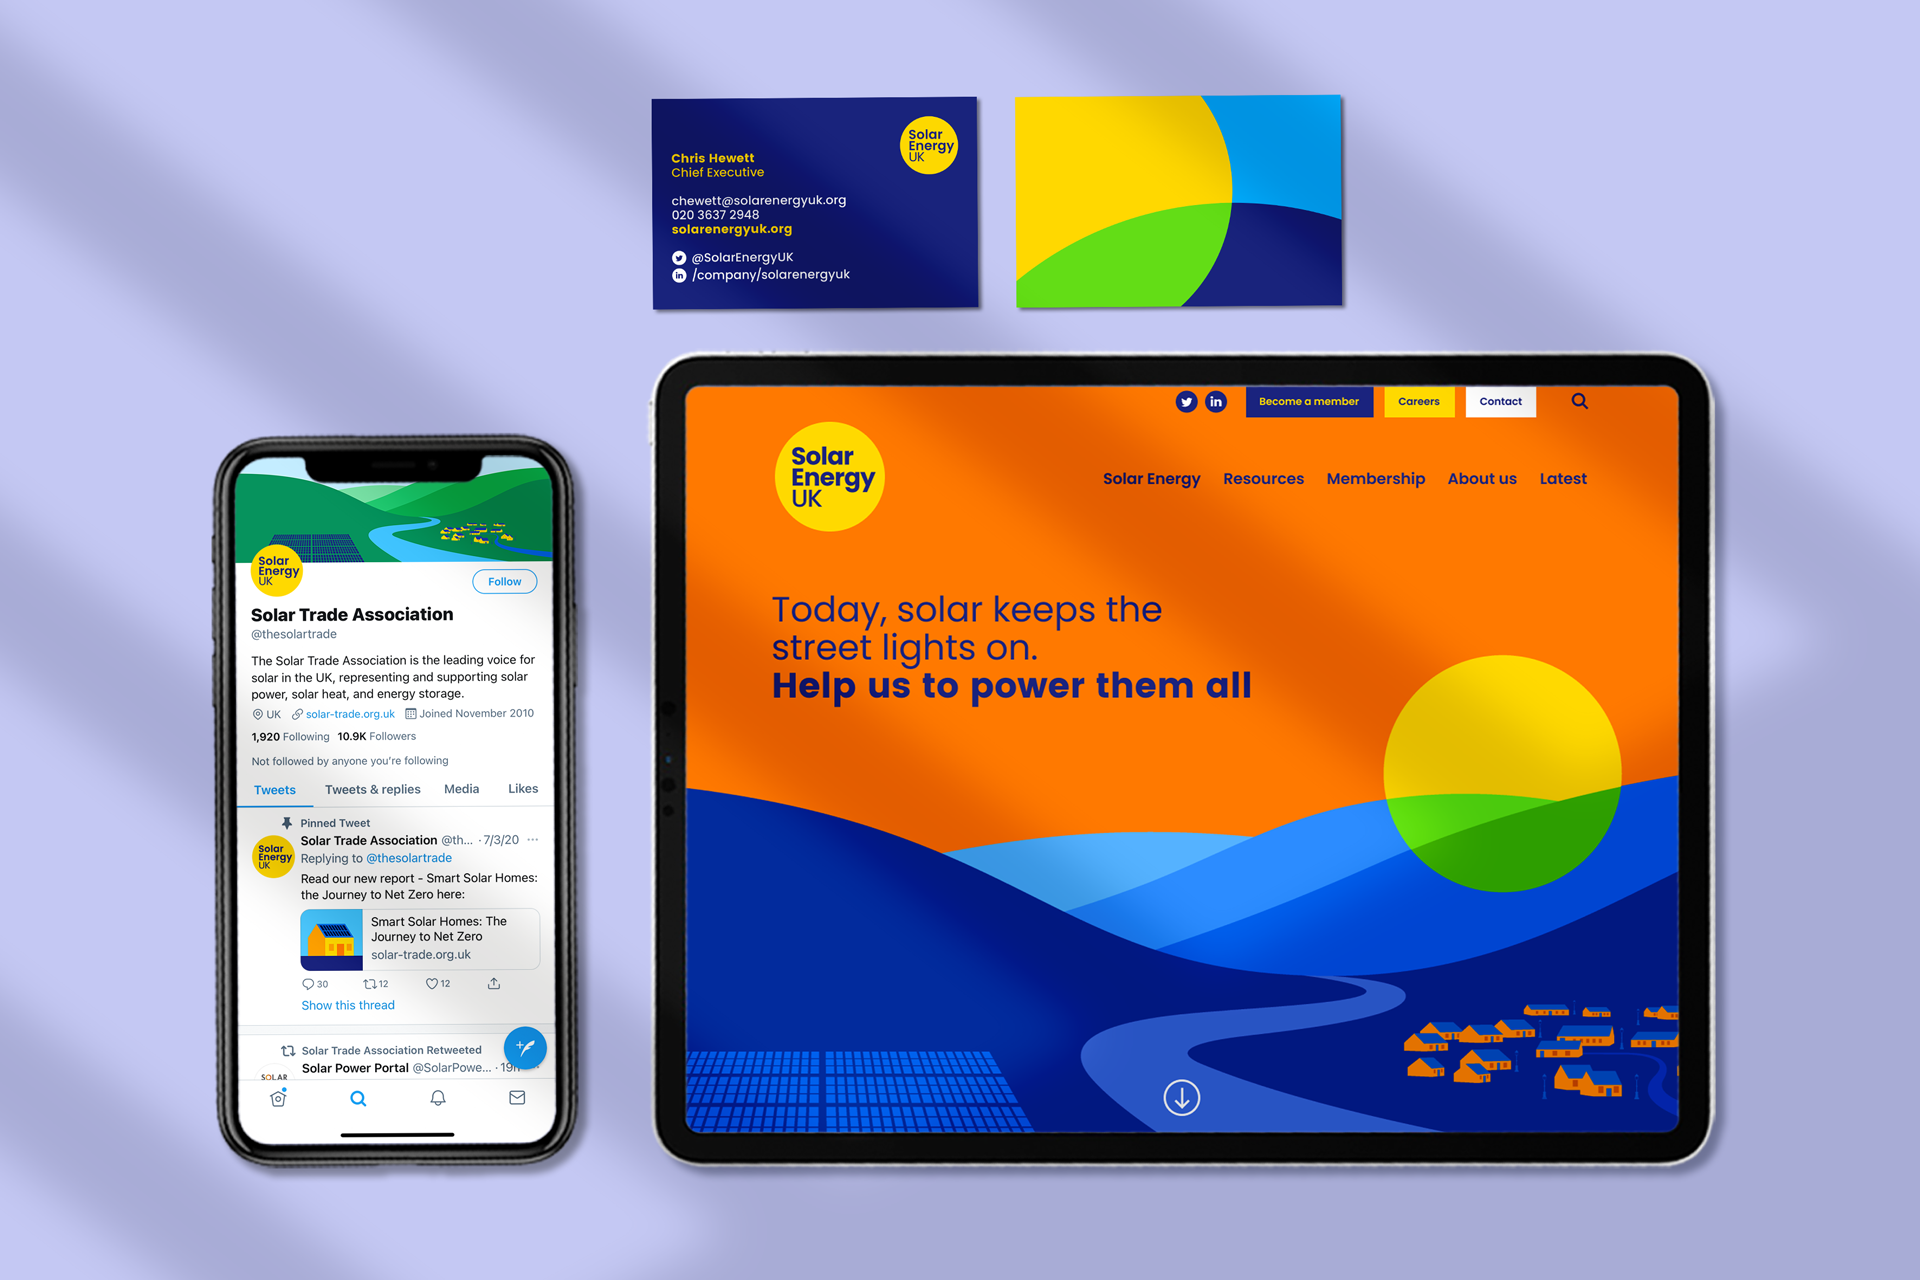 Solar Trade Association rebrands as Solar Energy UK markSolar Trade Association rebrands as Solar Energy UK with new logo, brand identity and website